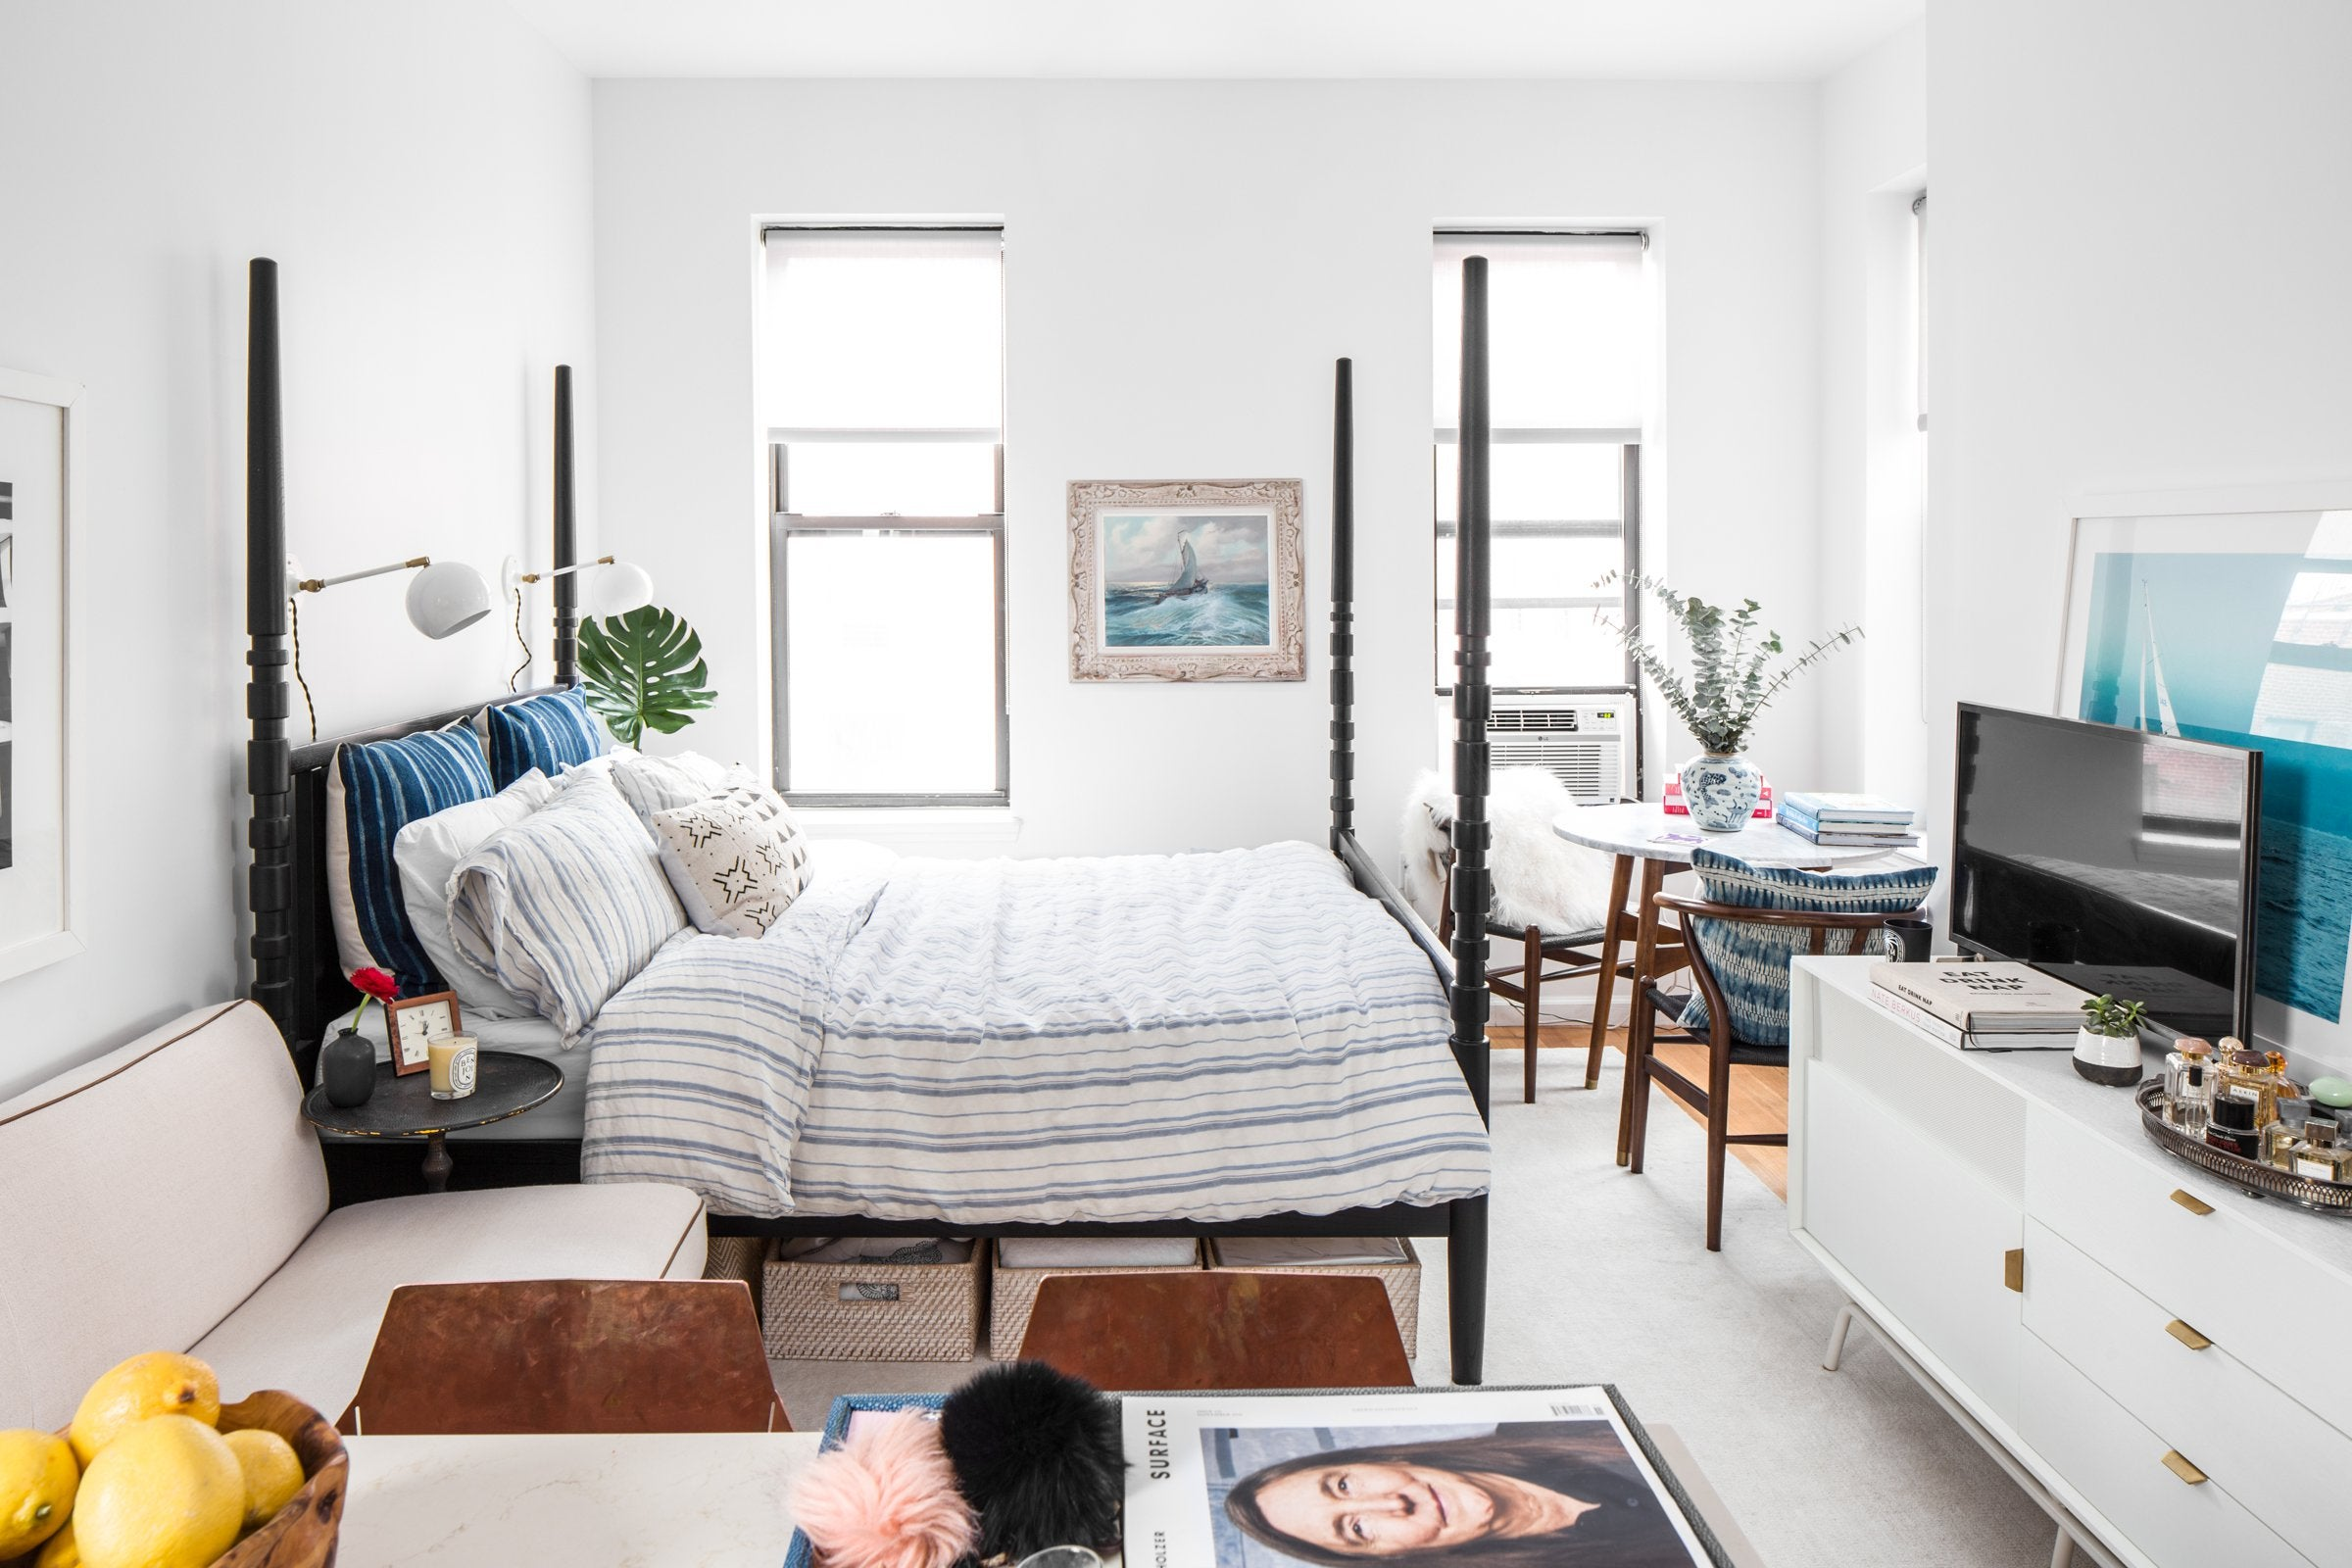 5 decorating hacks for small apartments